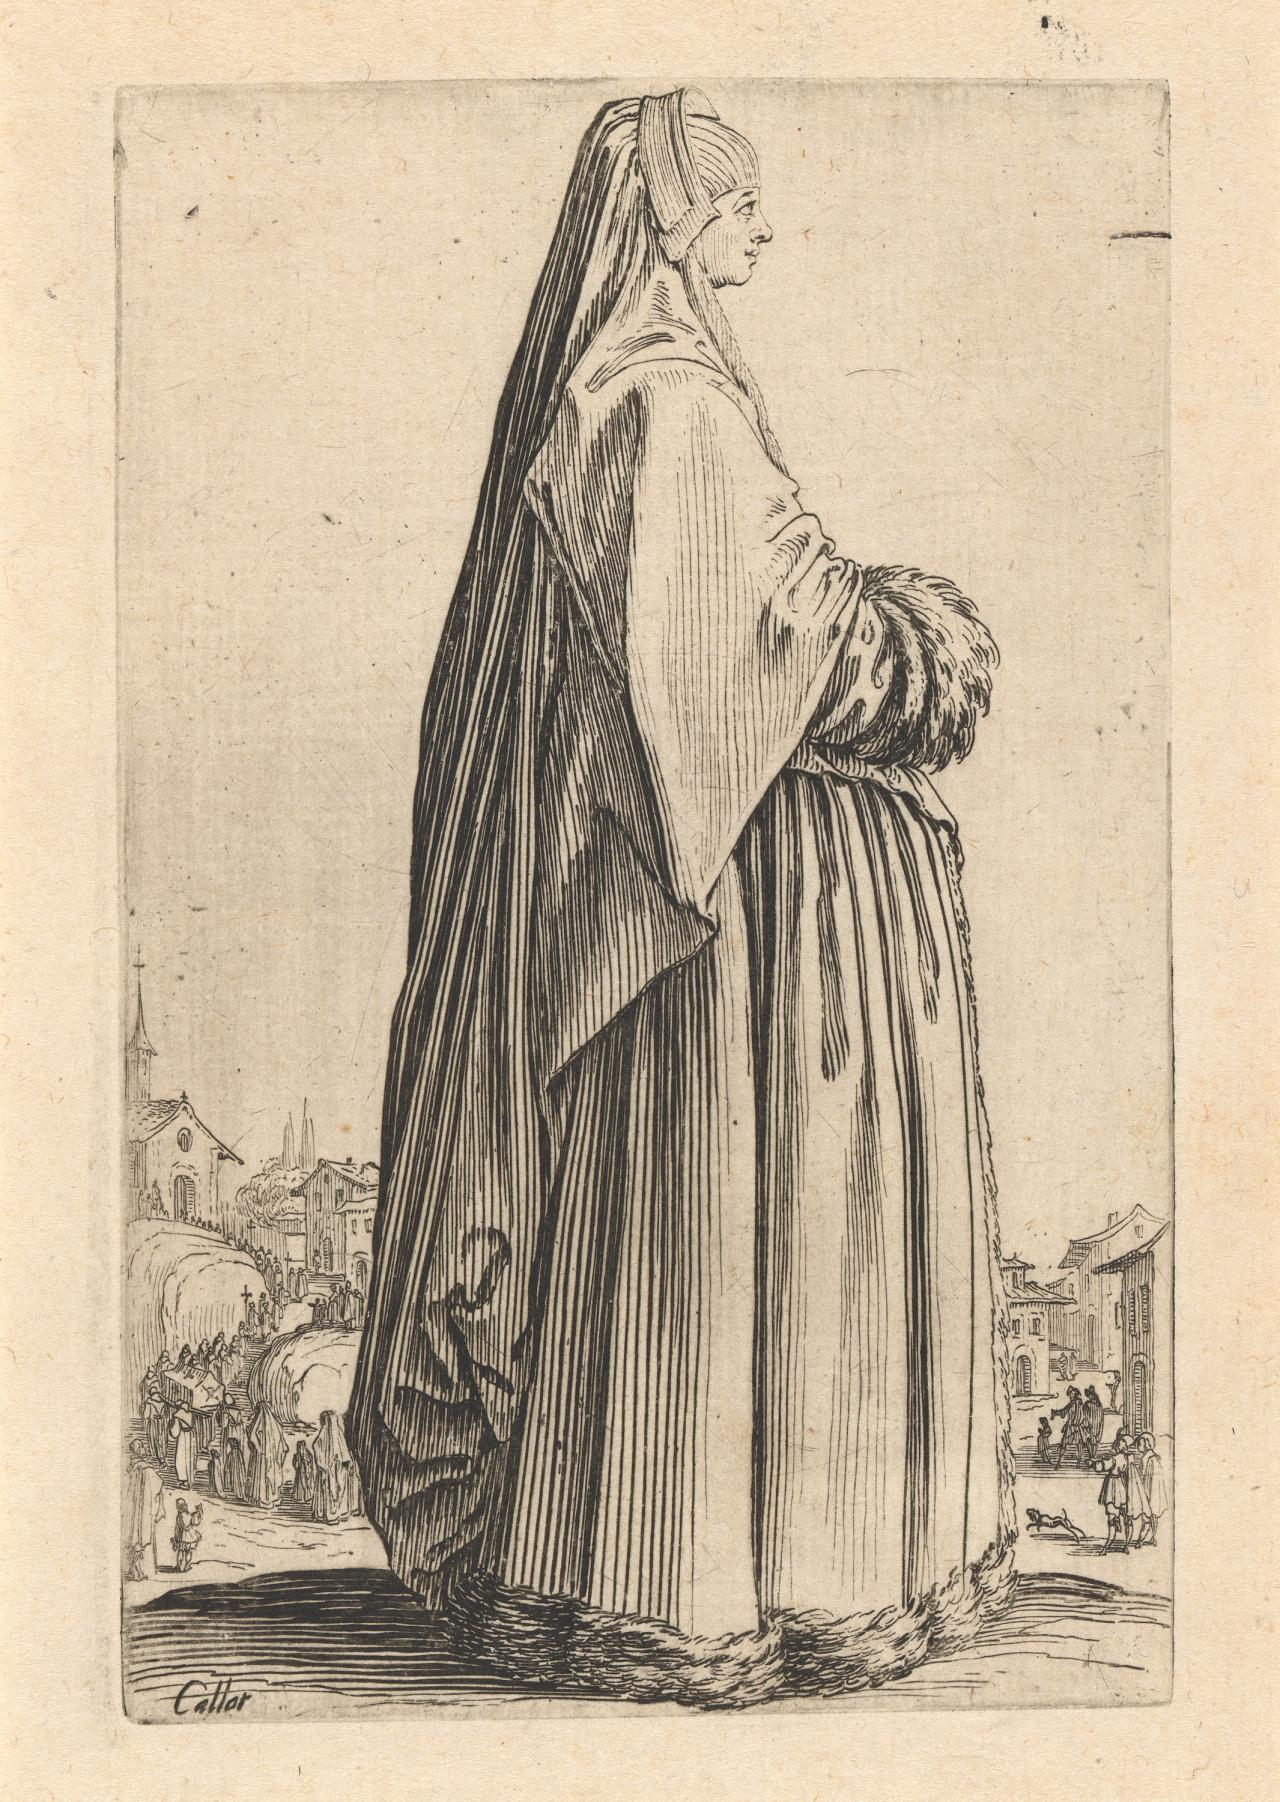 Noblewoman wearing a large veil and a dress trimmed with fur